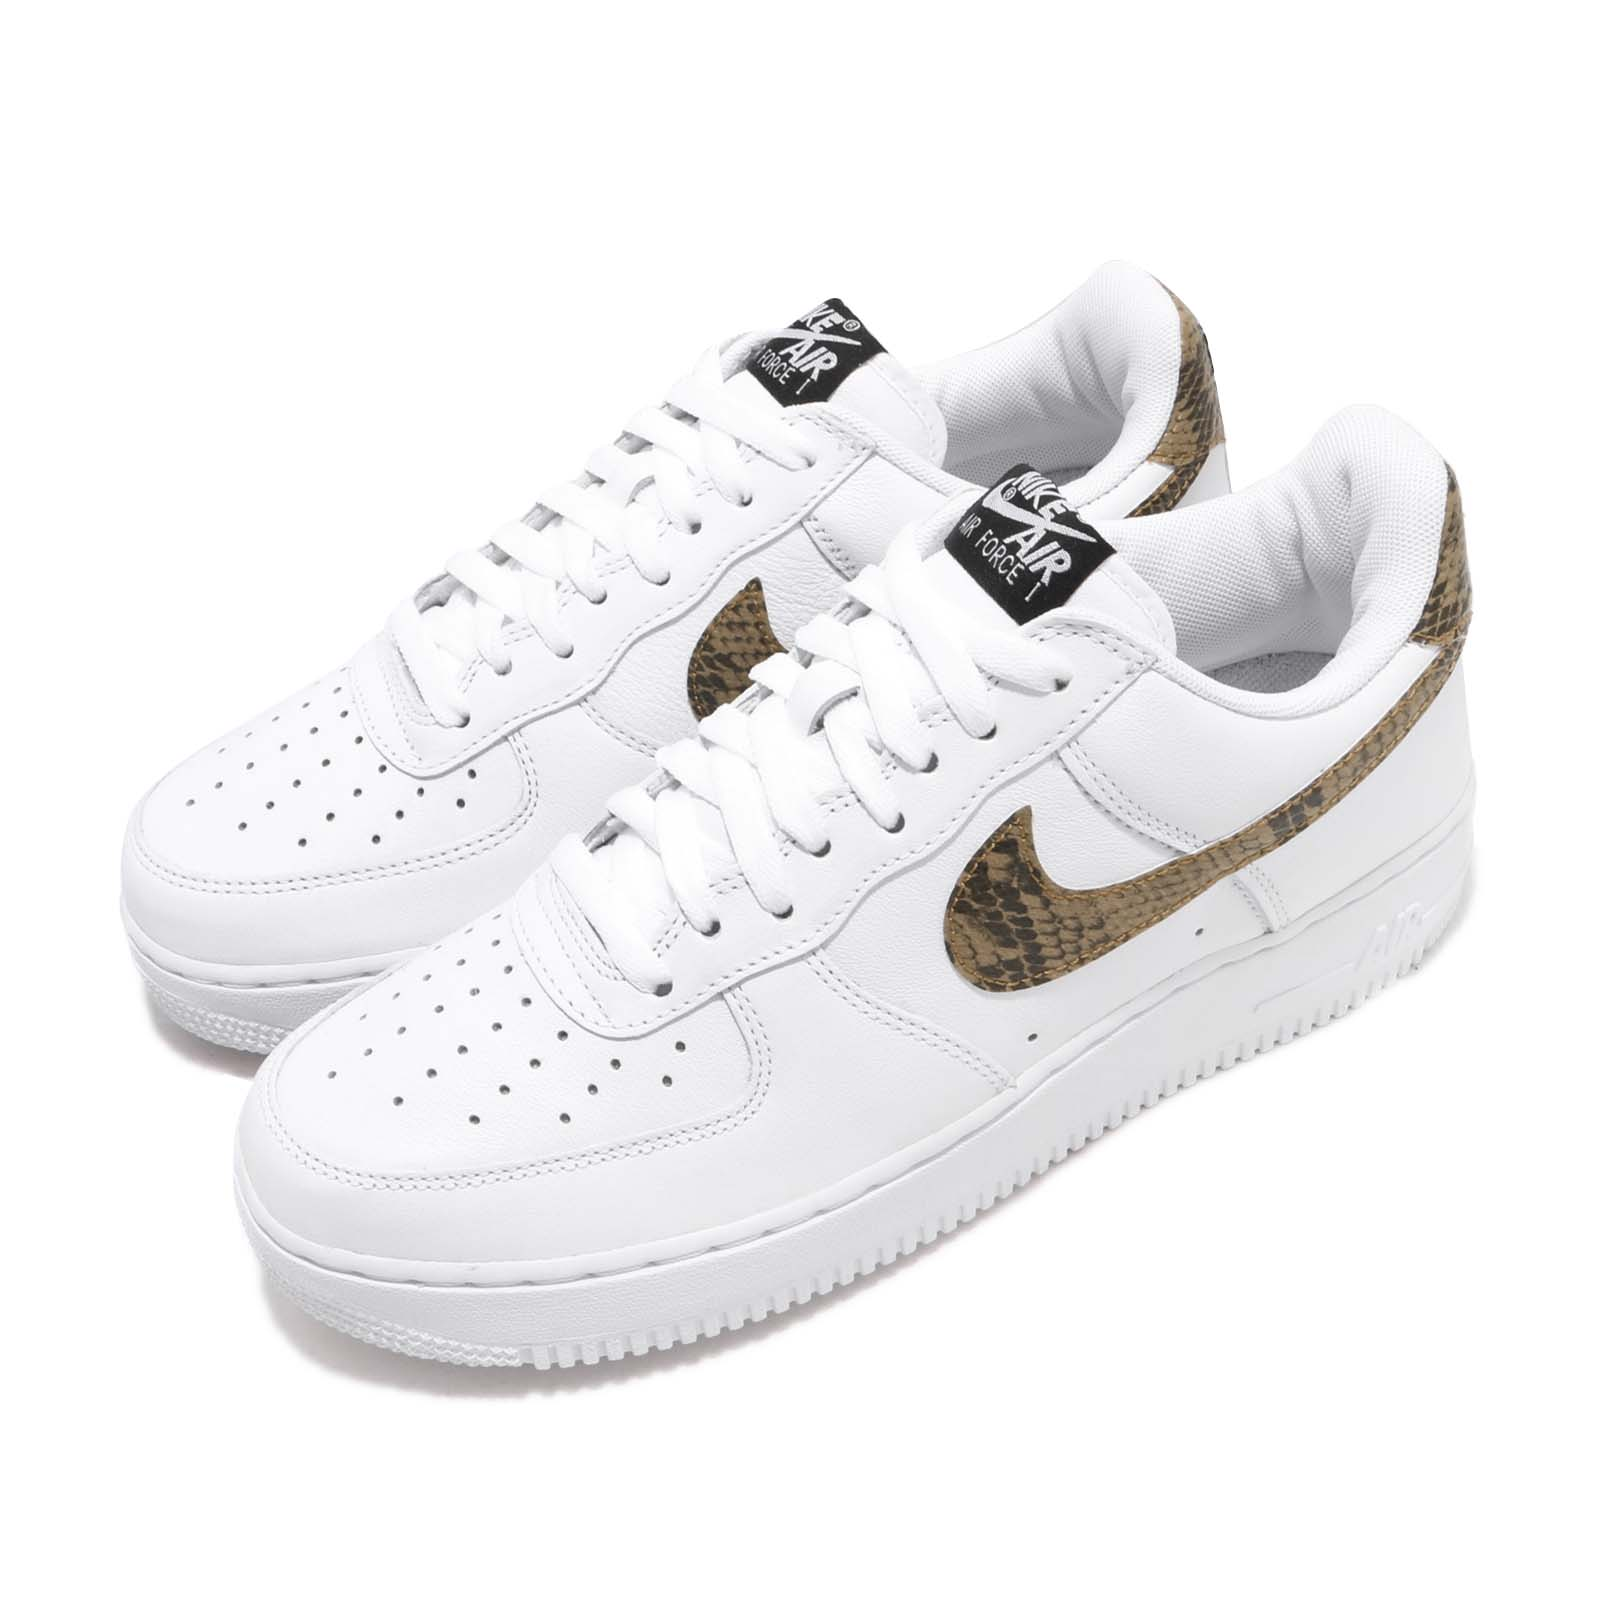 save off 1a3da 0f43f Details about Nike Air Force 1 Low AF1 Ivory Snake Snakeskin White Men  Casual Shoes AO1635-100